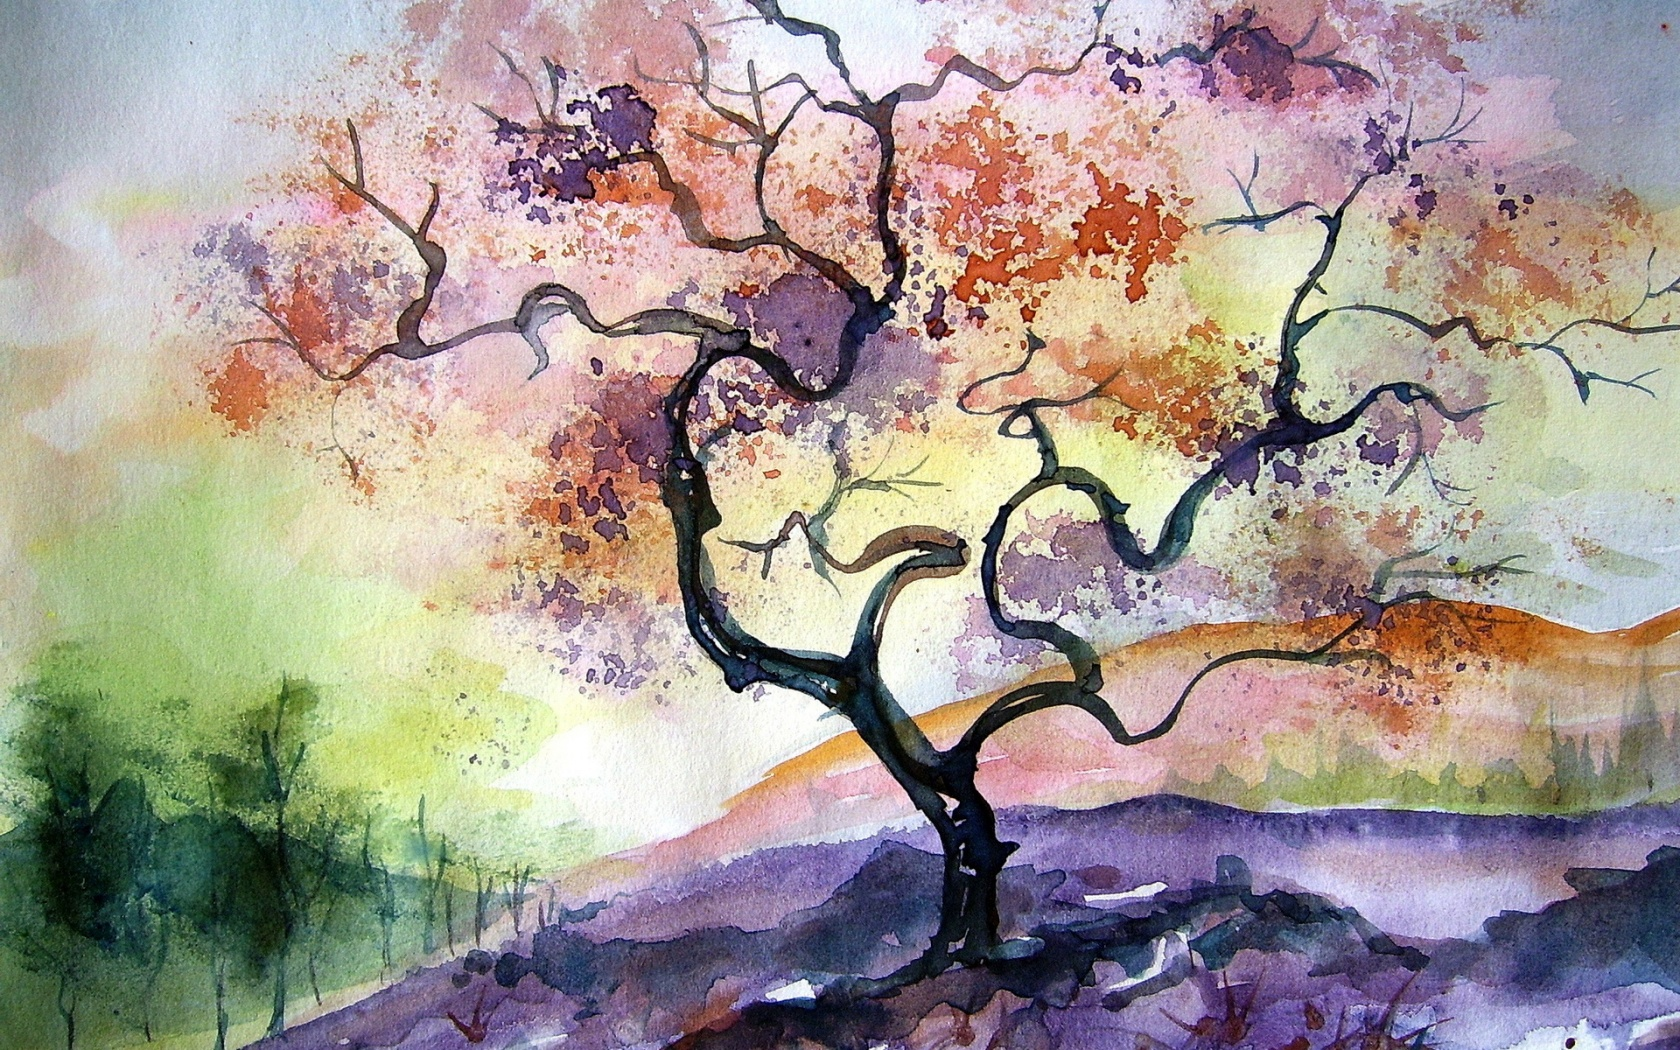 Watercolor tree painting | 1680 x 1050 | download | close